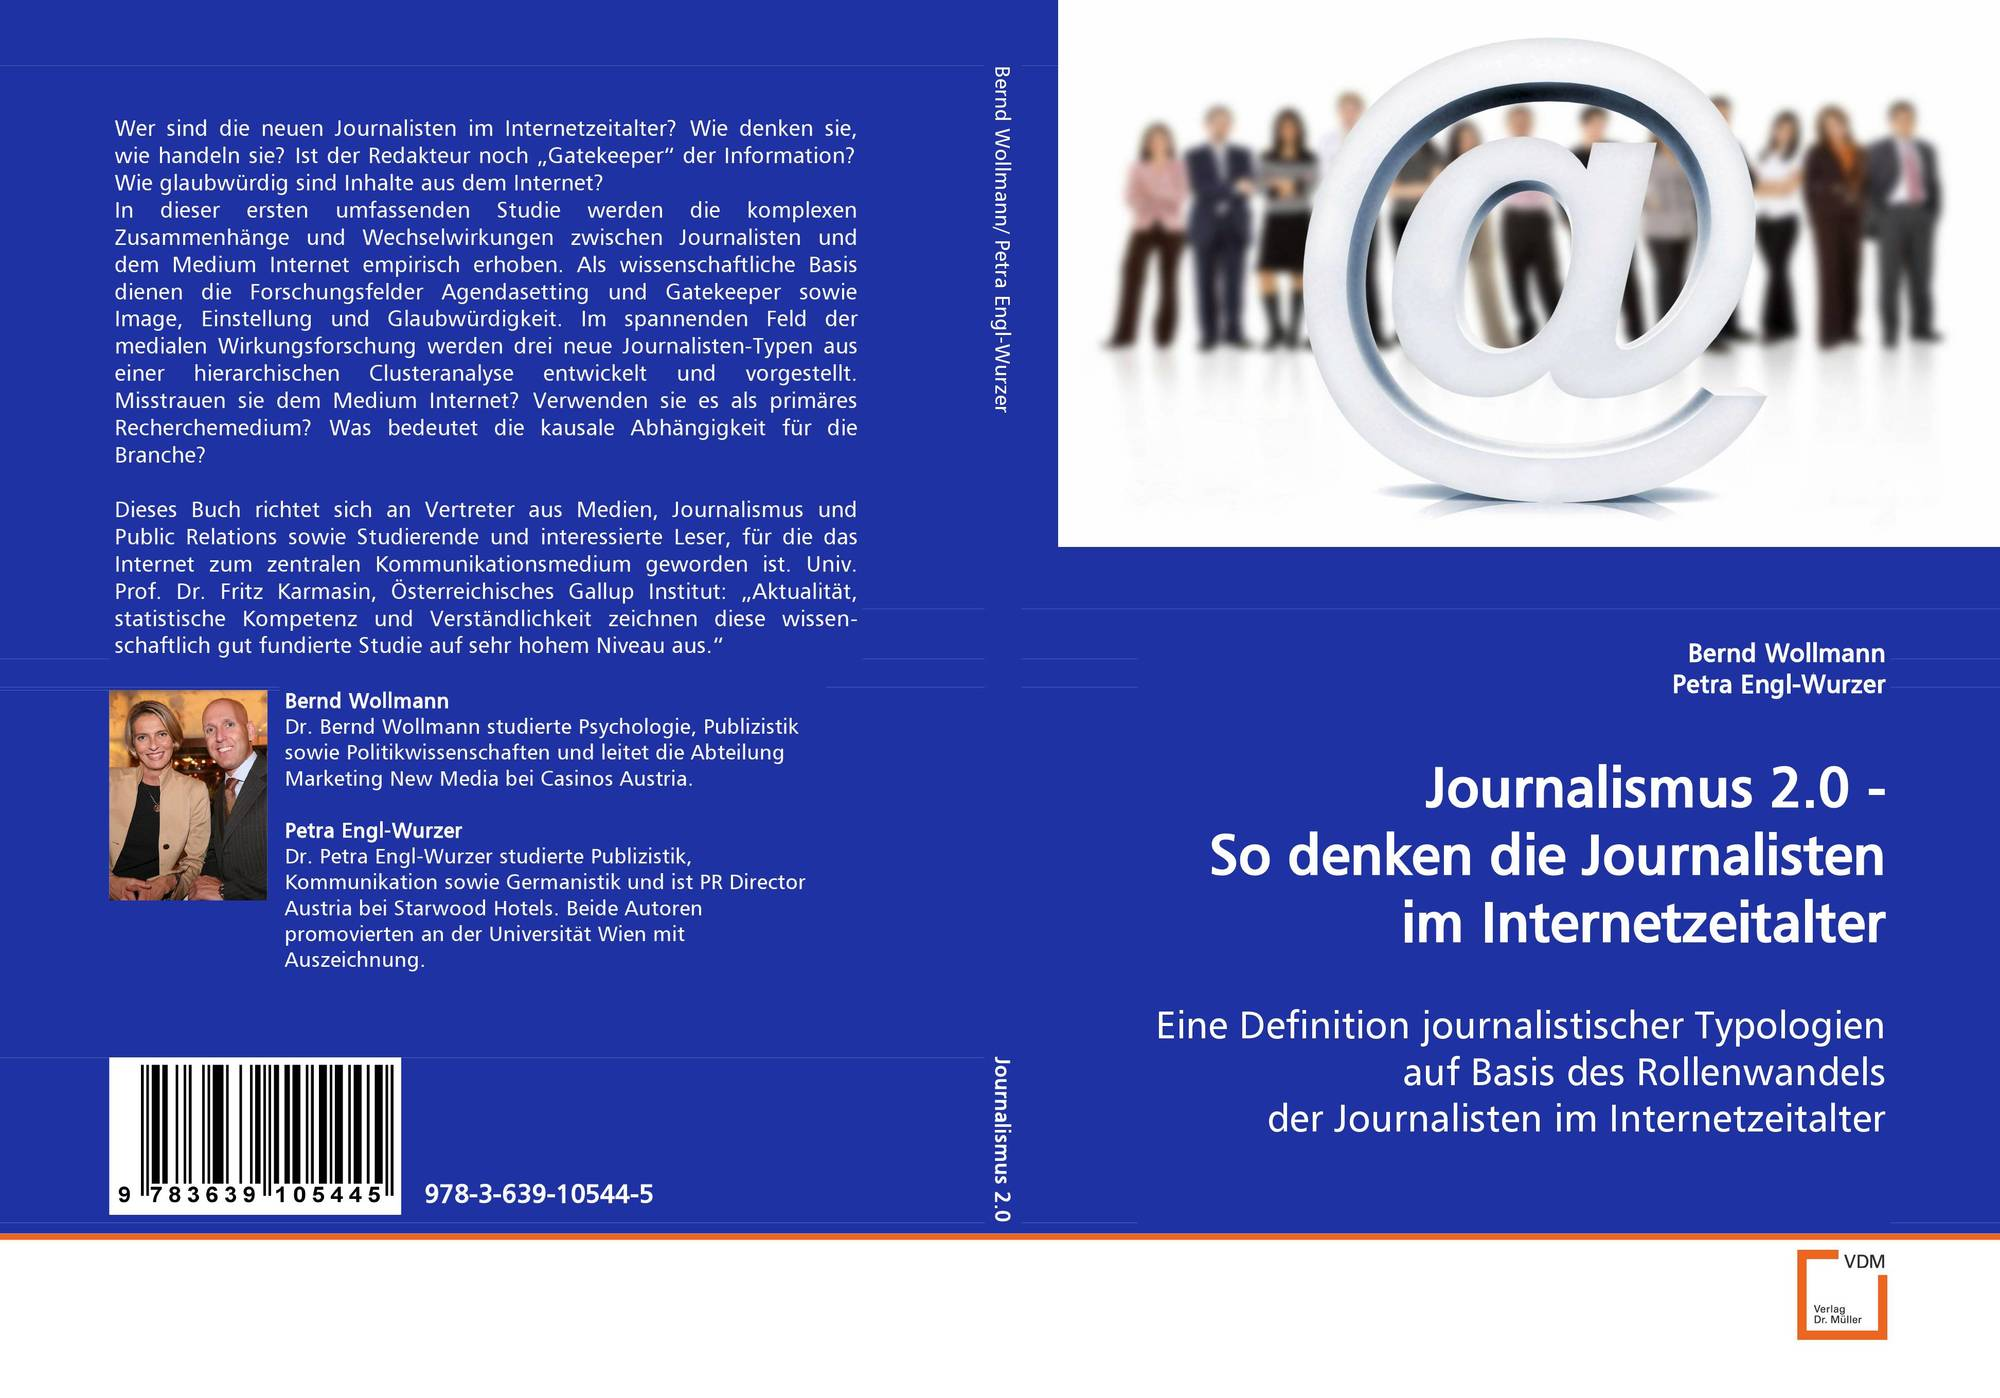 Journalismus 2.0 -So denken die Journalisten im Internetzeitalter ...